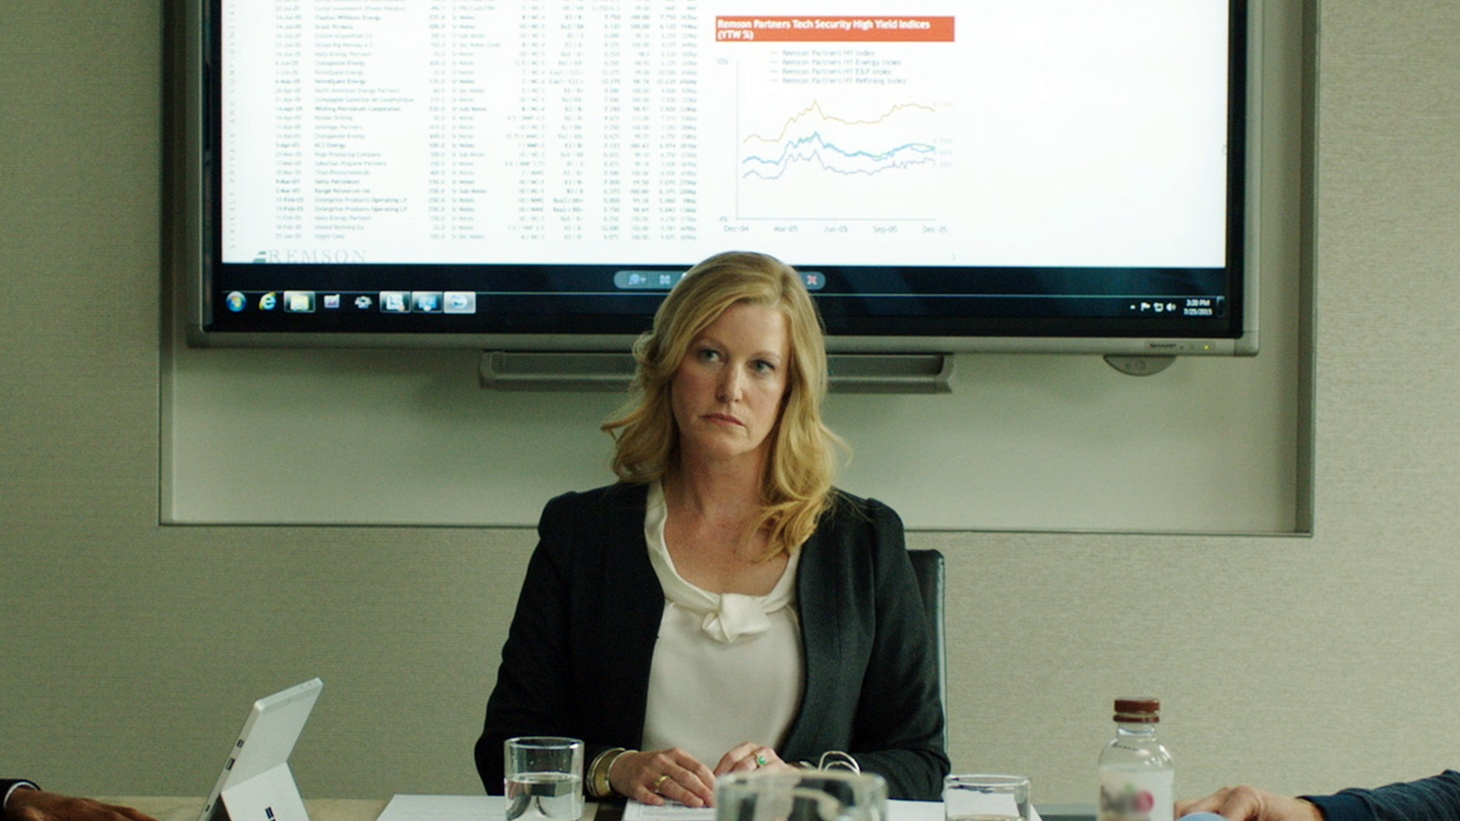 Actress Anna Gunn discusses the struggles and successes of powerful women in the world of investment banking in Equity.